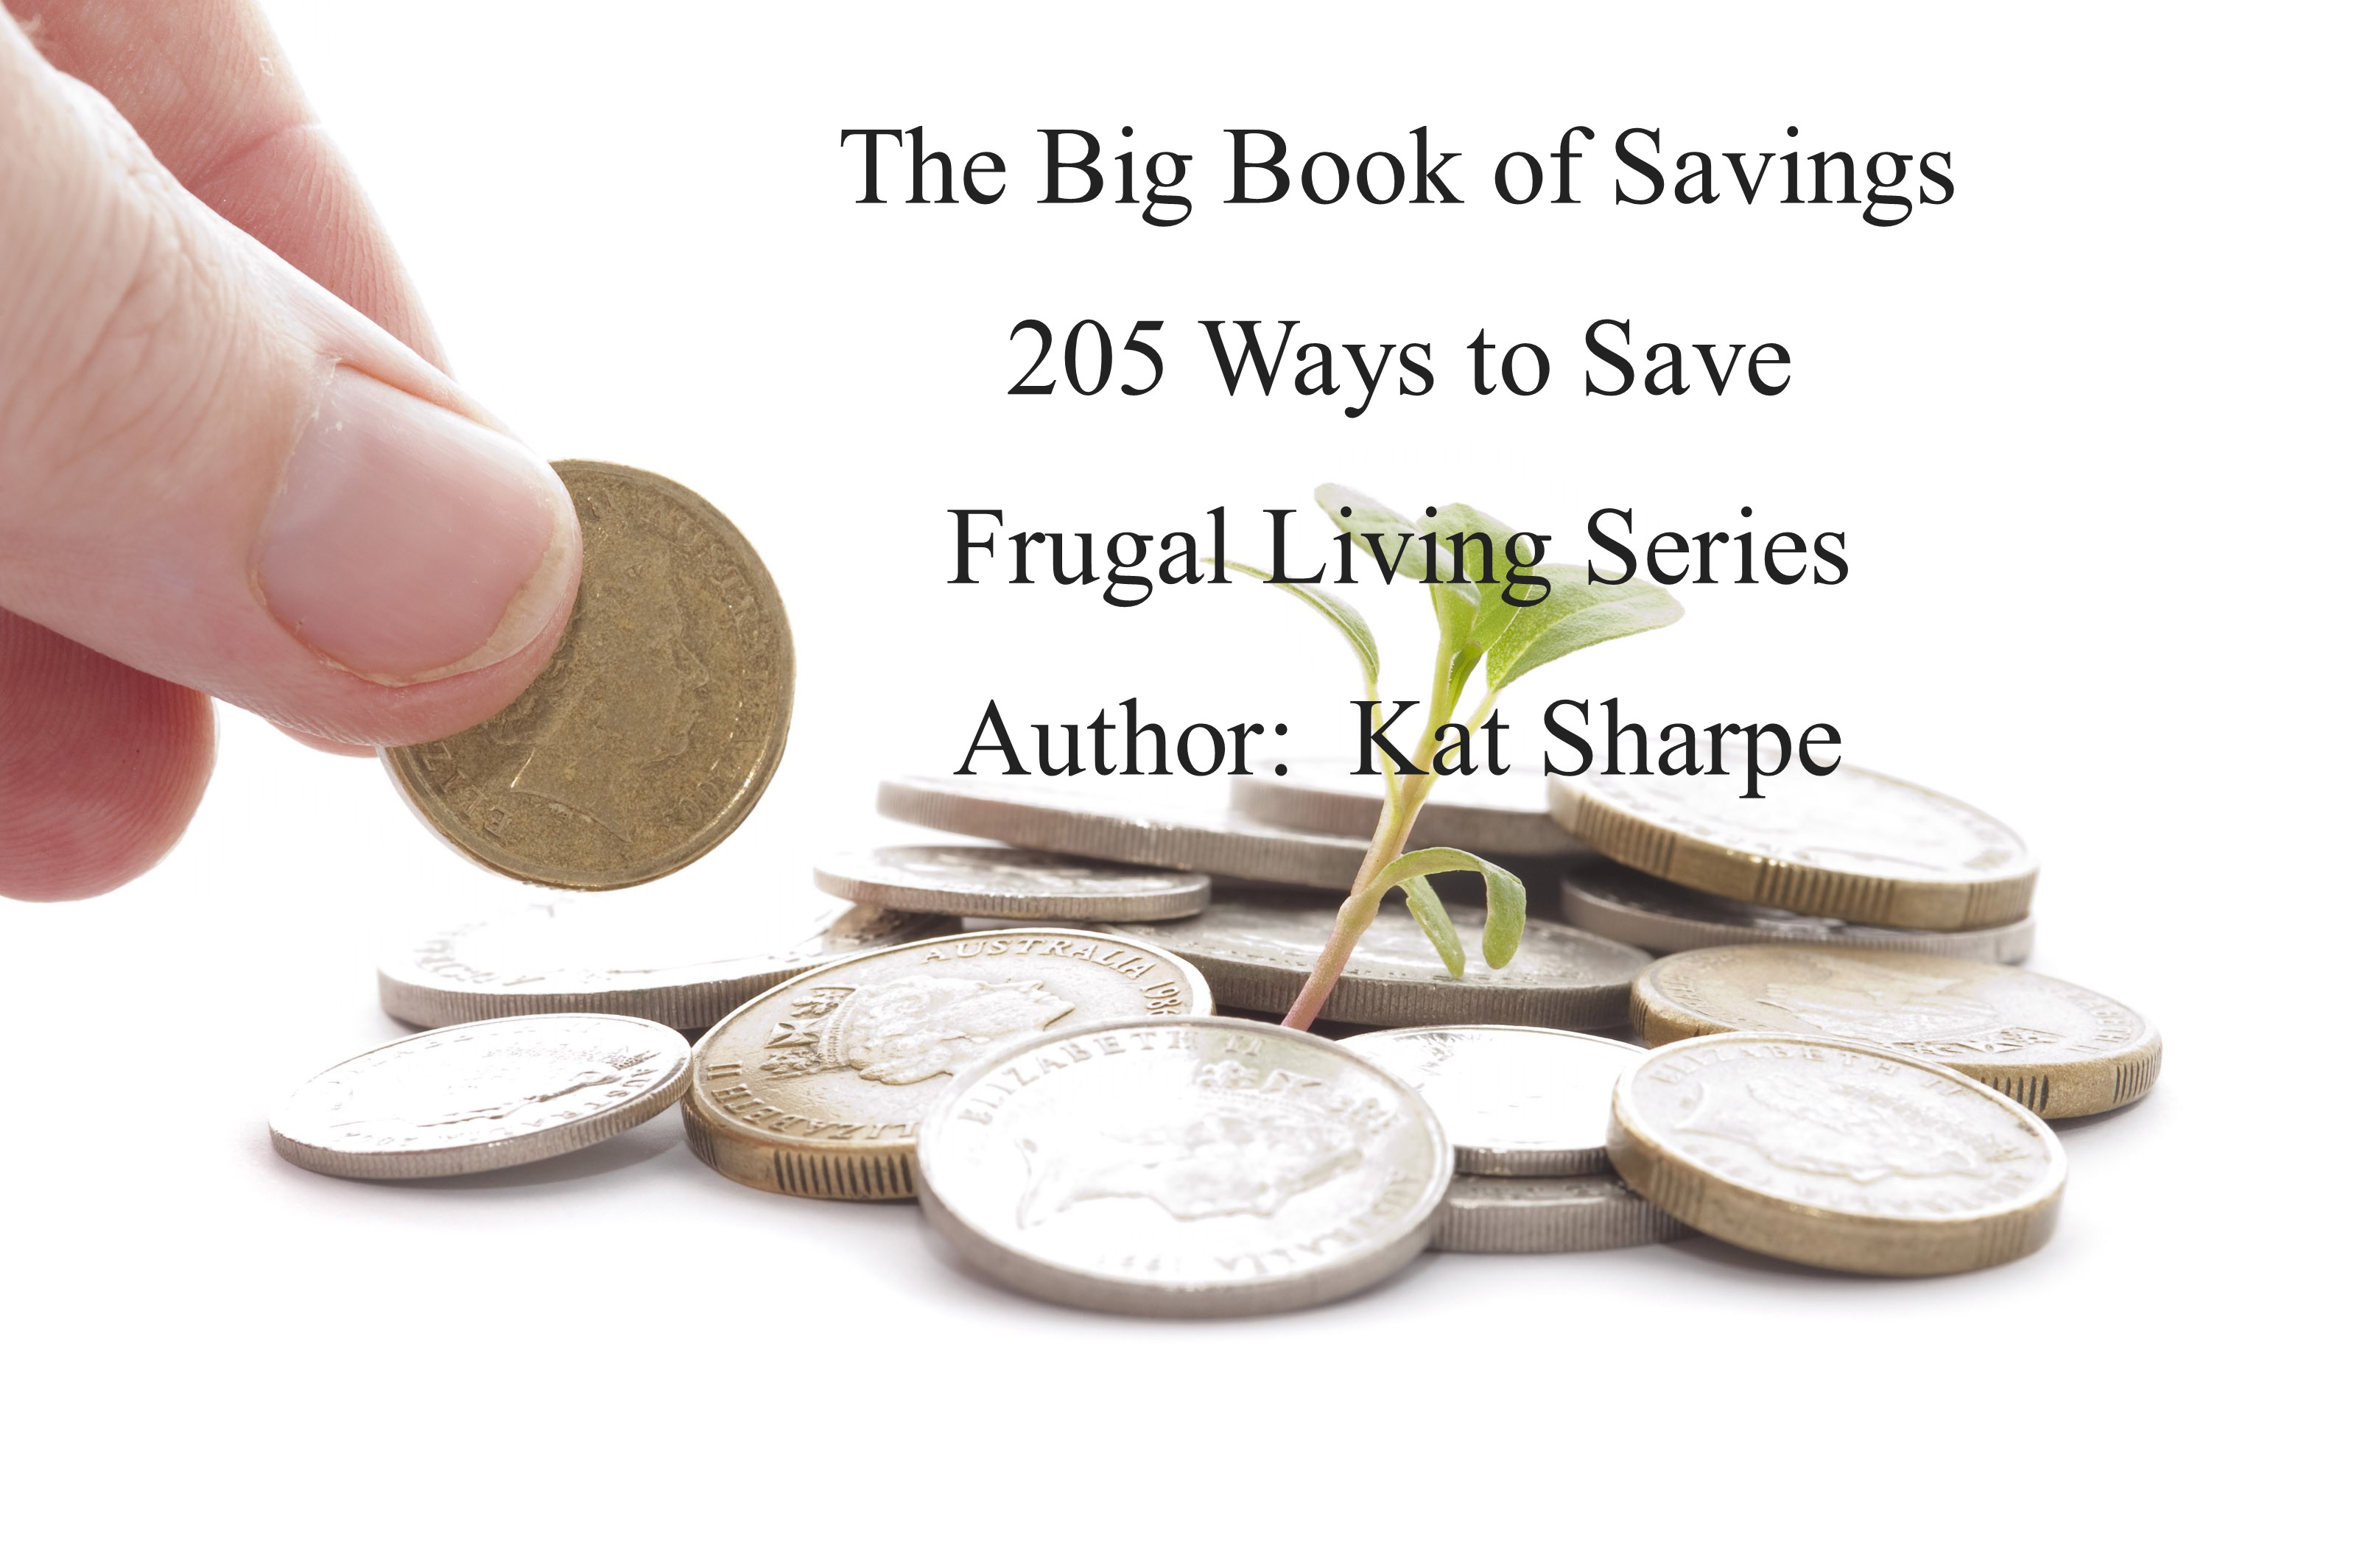 The Big Book of Savings 205 ways to save   Frugal Living Series